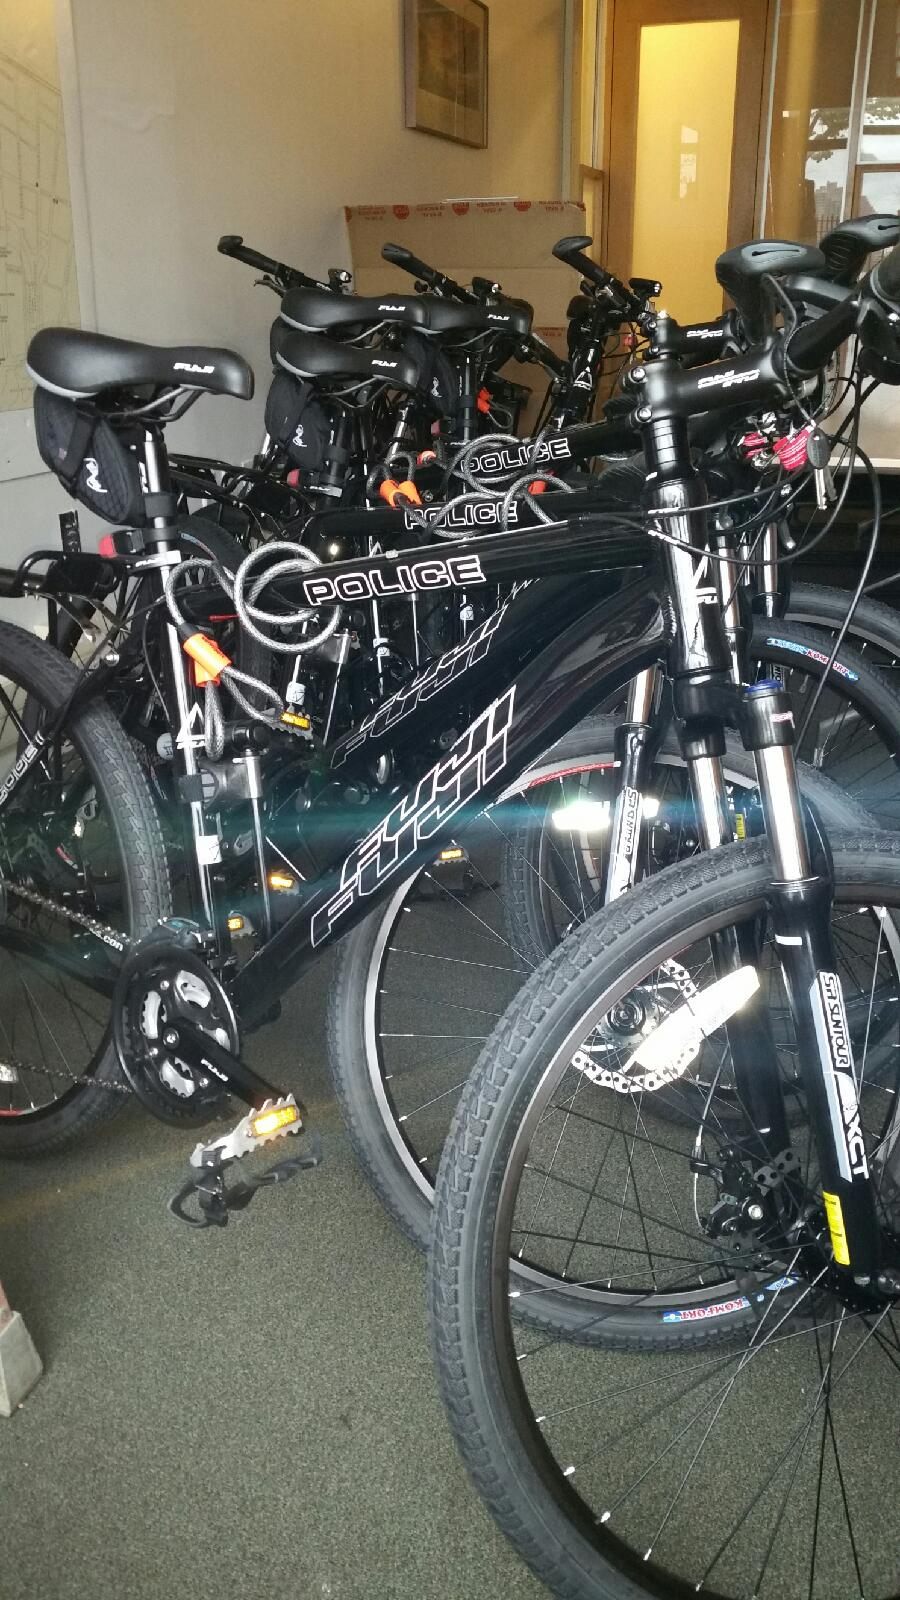 Police Bikes Used By AlliedBarton Stir Up Concerns In Battery Park City